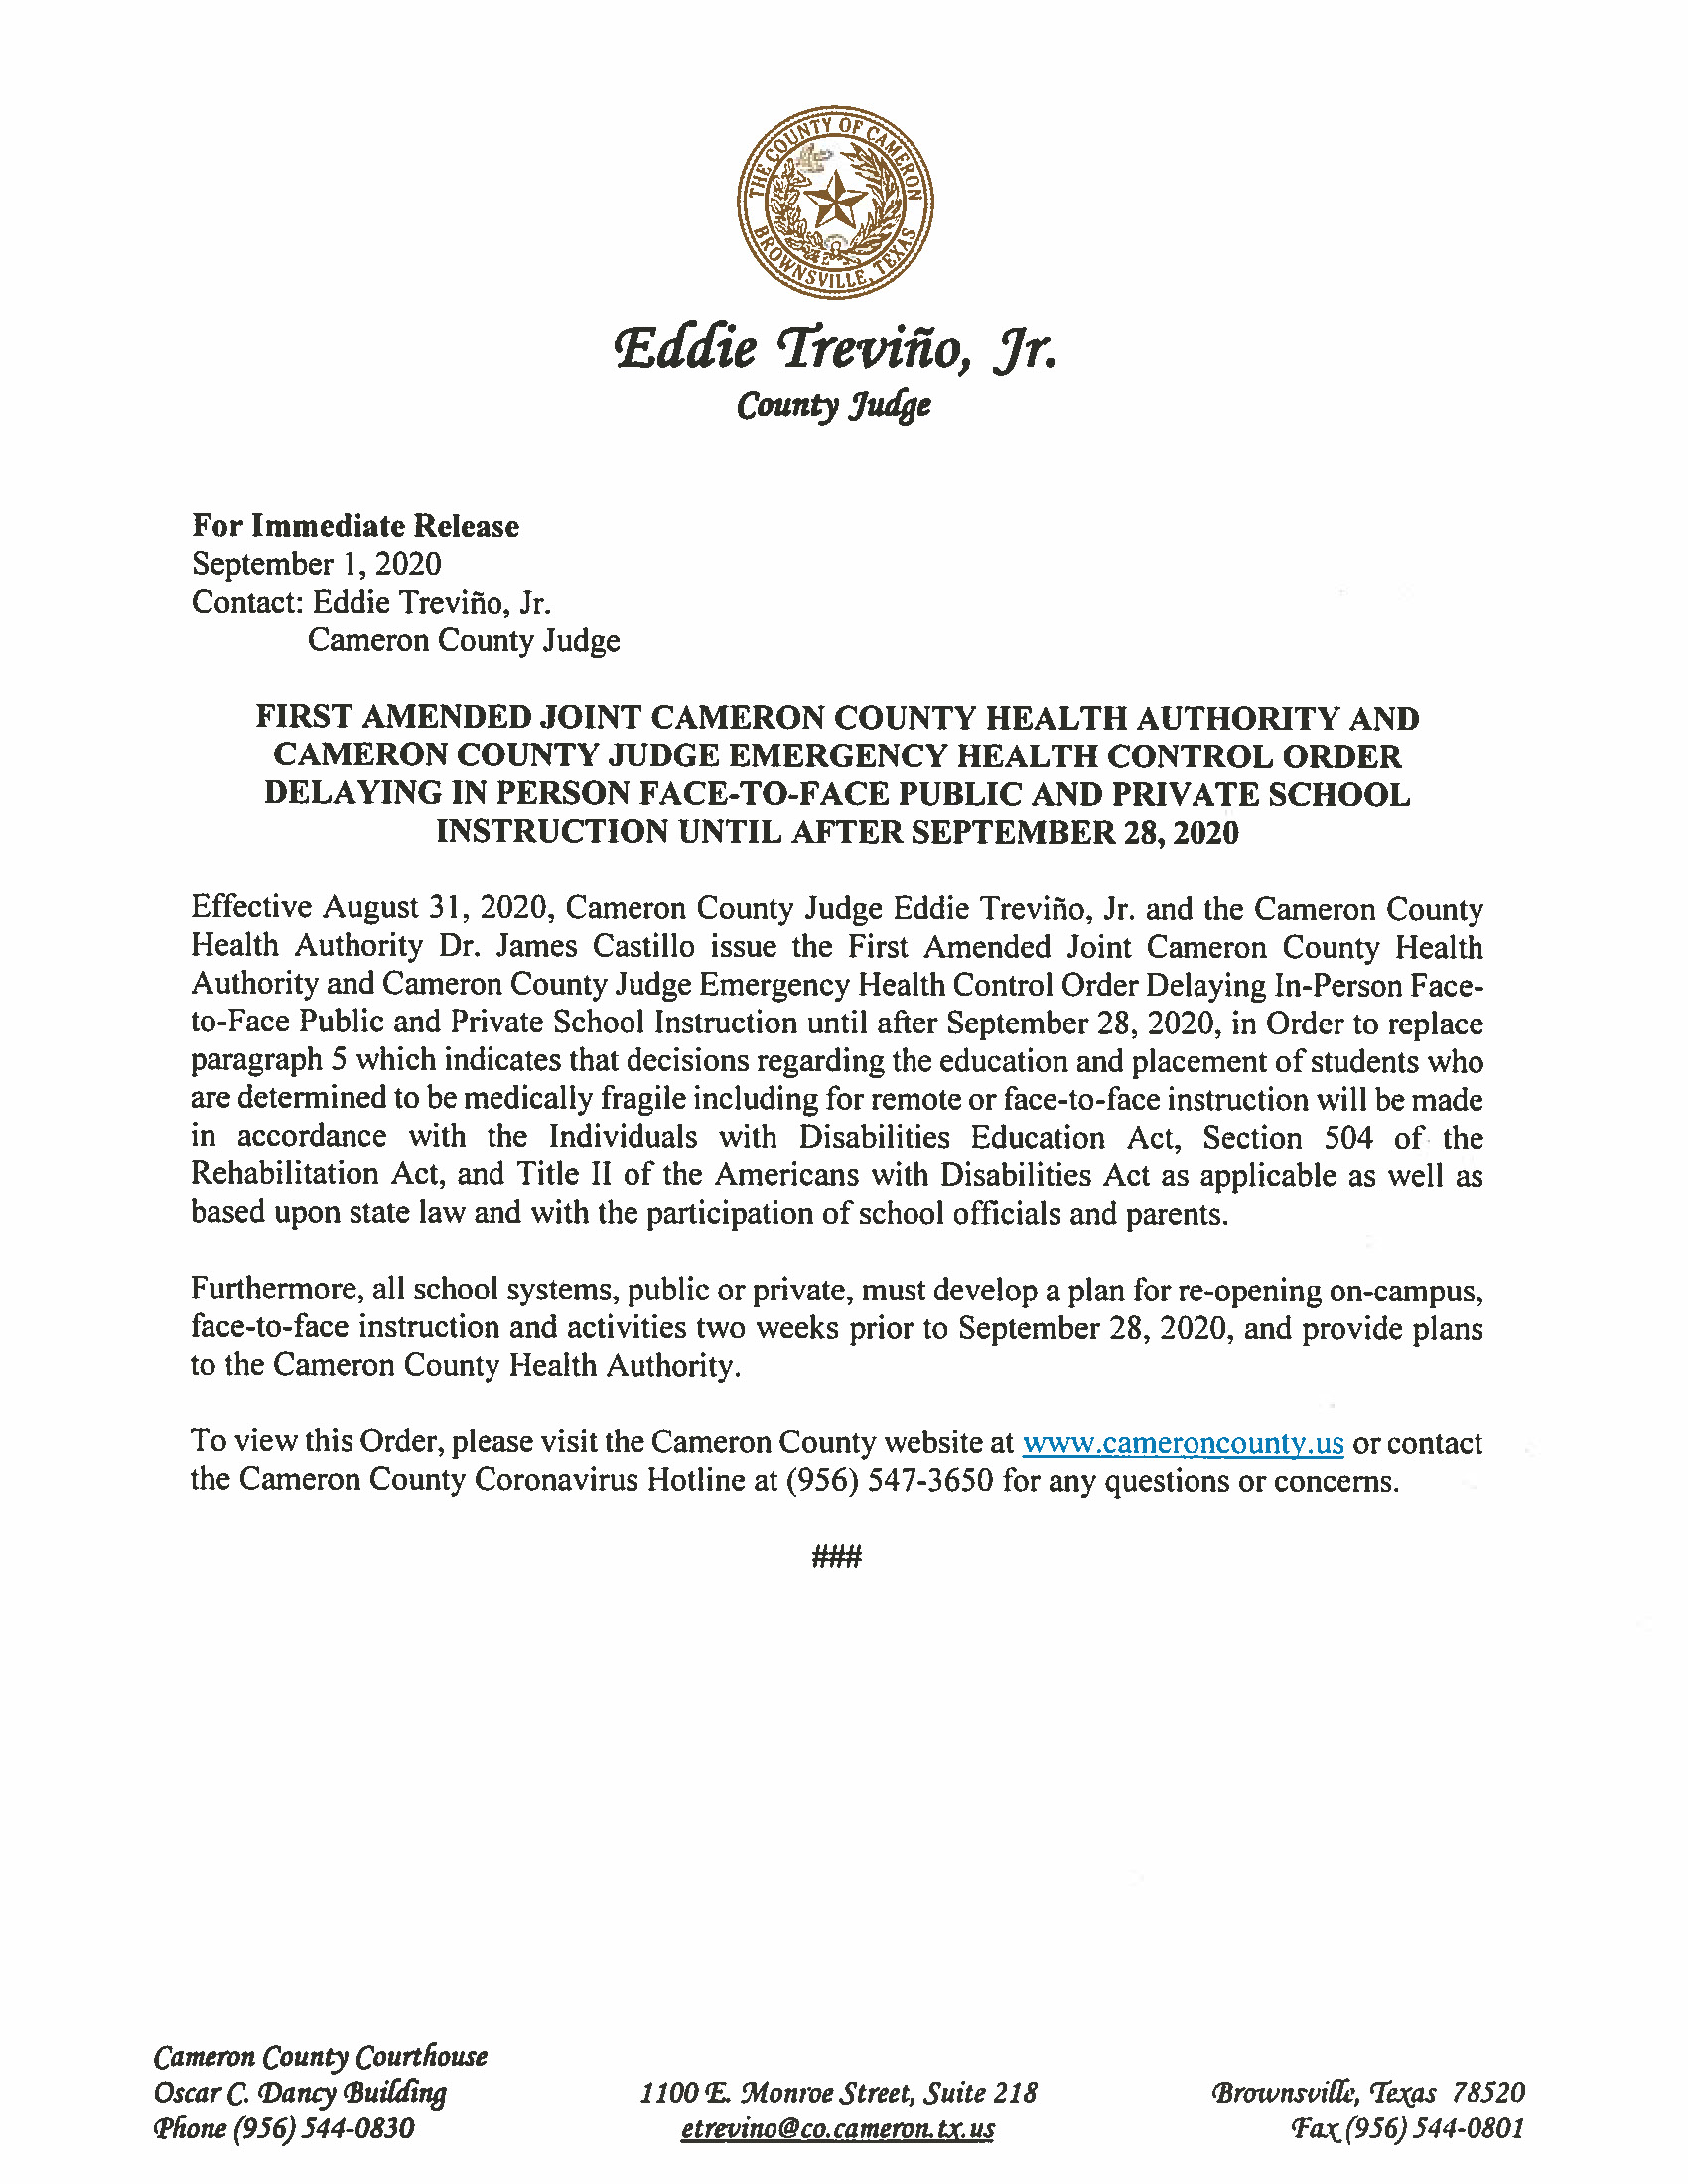 08.31.2020 Press Release First Amended Joint Cameron County Health Authority And Cameron County Judge EM Order